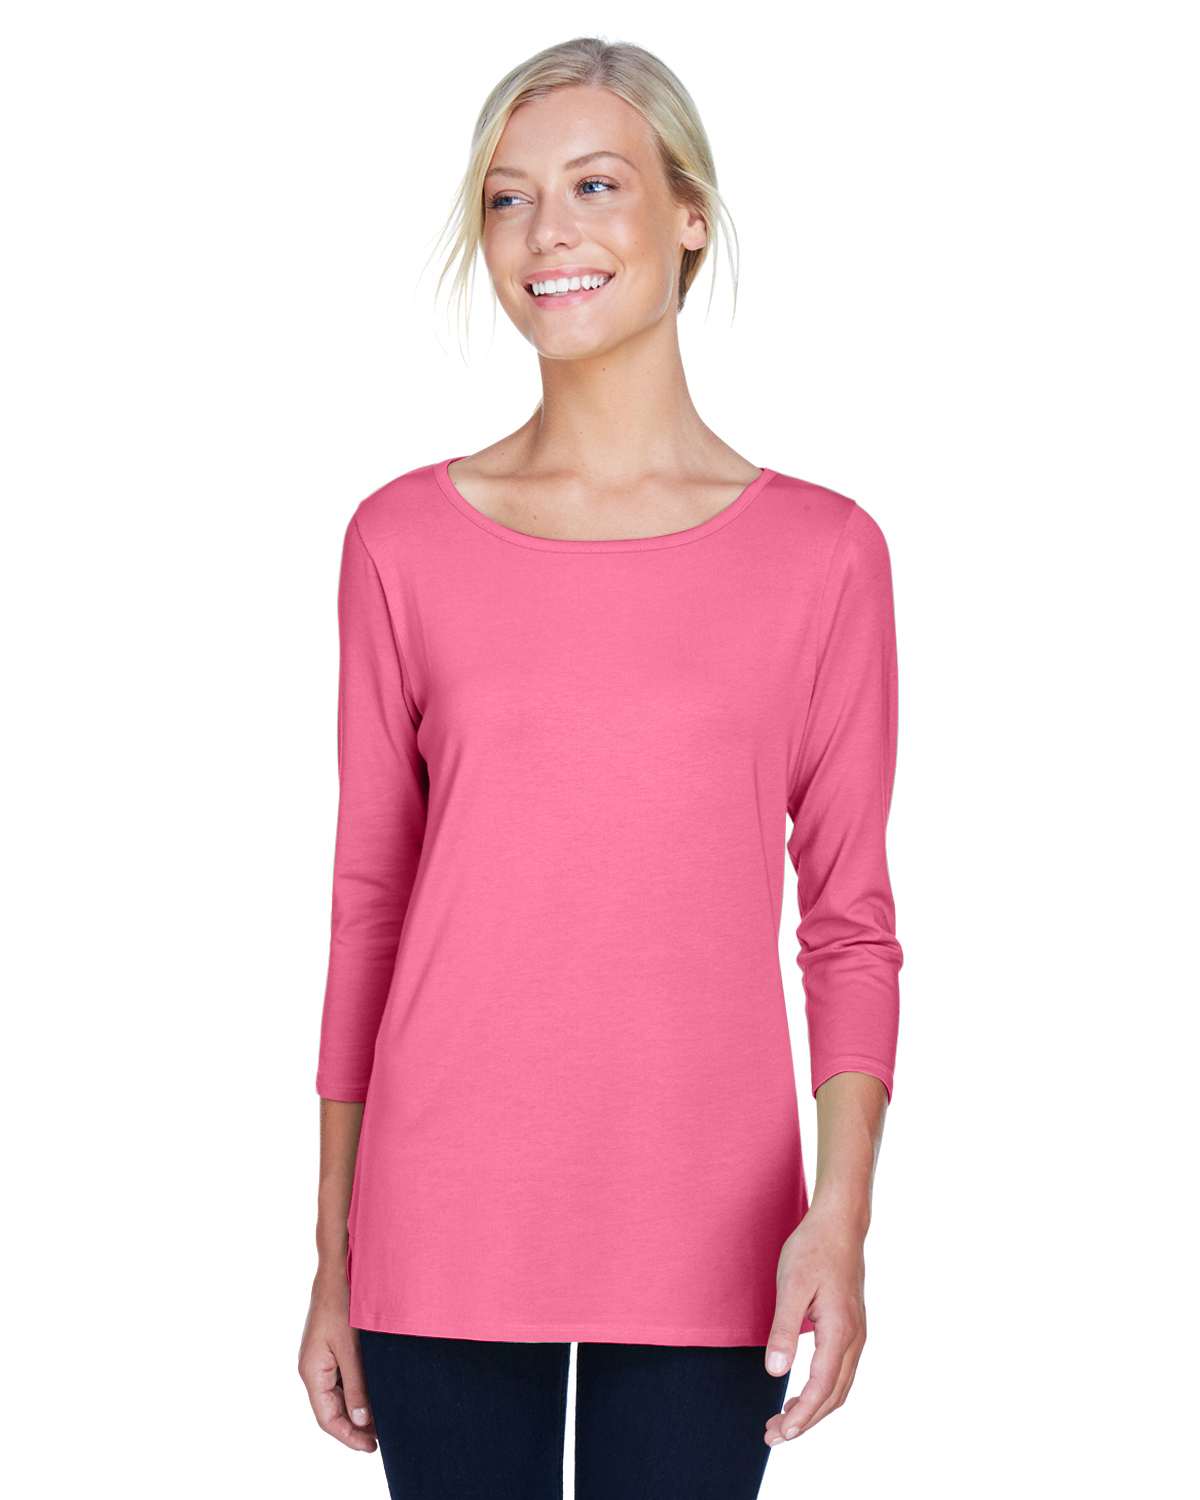 DP192W  LADIES' 3/4 SLEEVE BRACELET TOP